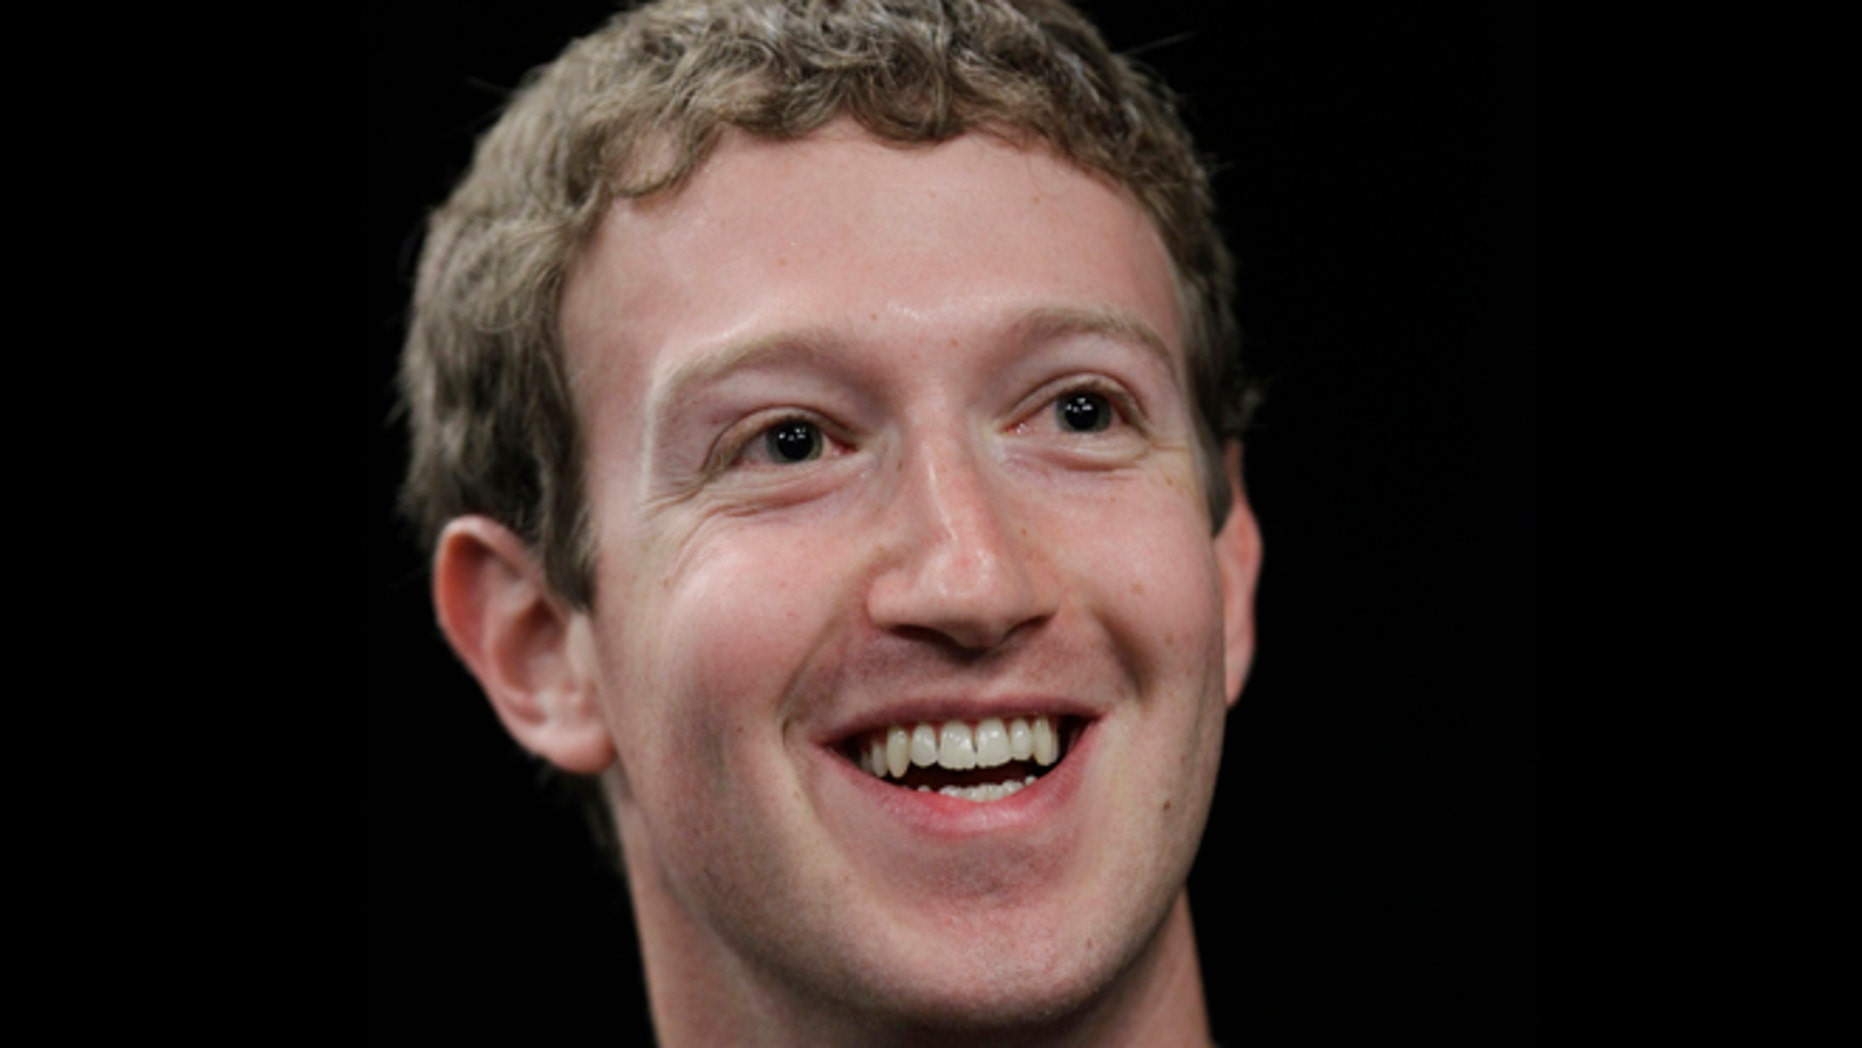 File: Facebook CEO Mark Zuckerberg at a news conference in San Francisco, Calif.